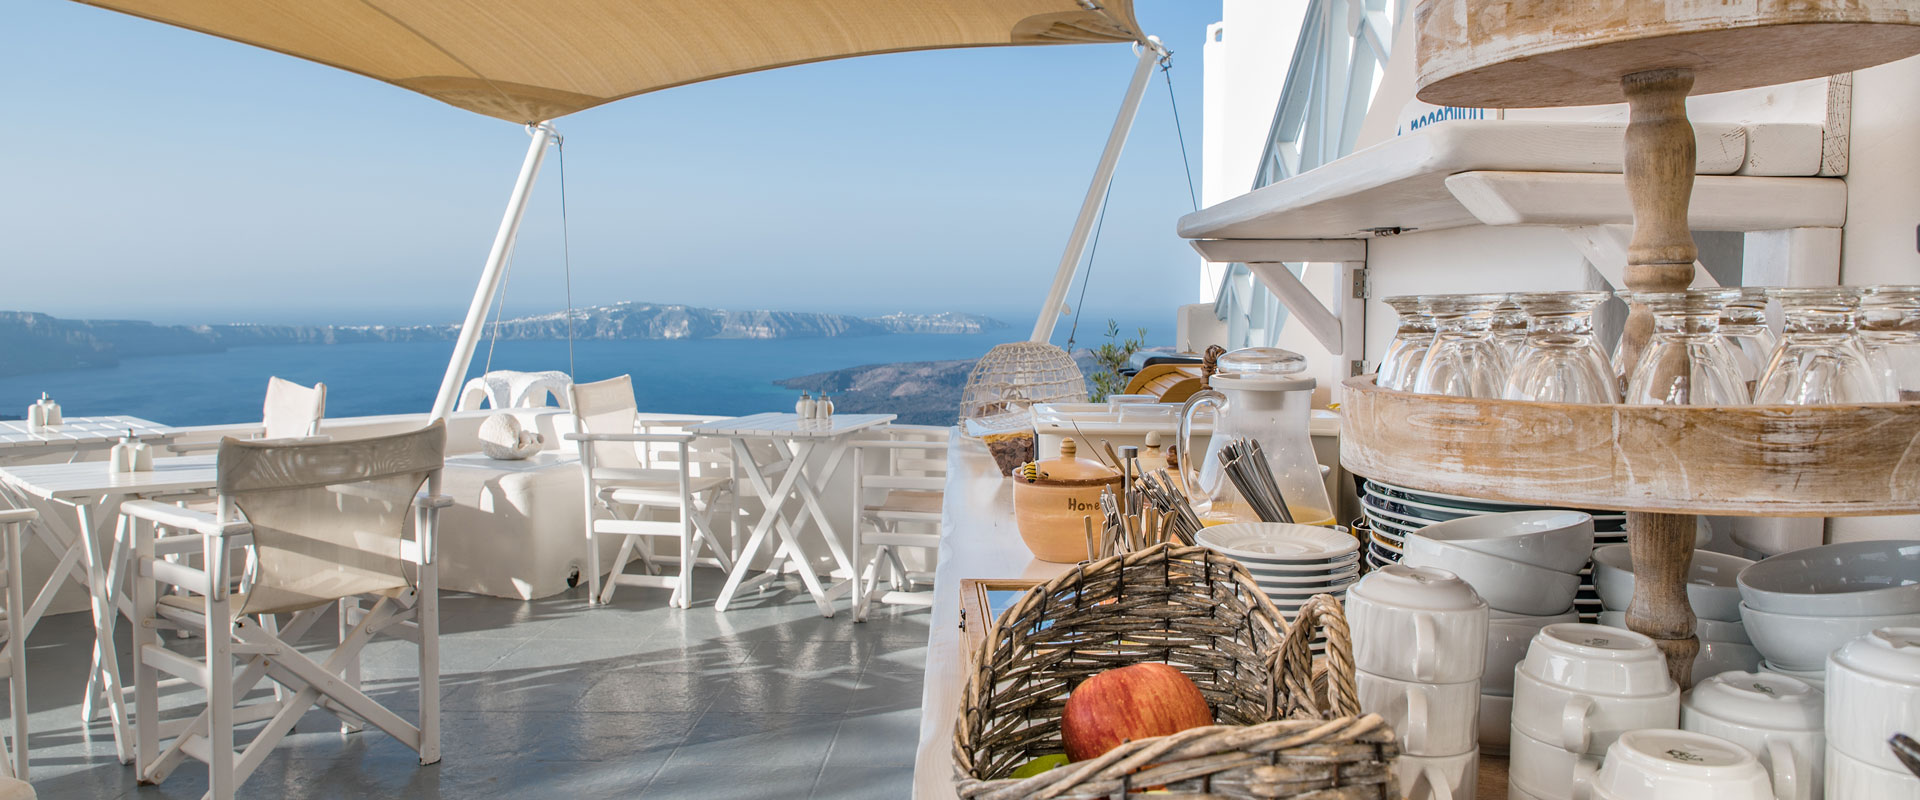 Santorini Apartments & Suites | Veranda to Caldera